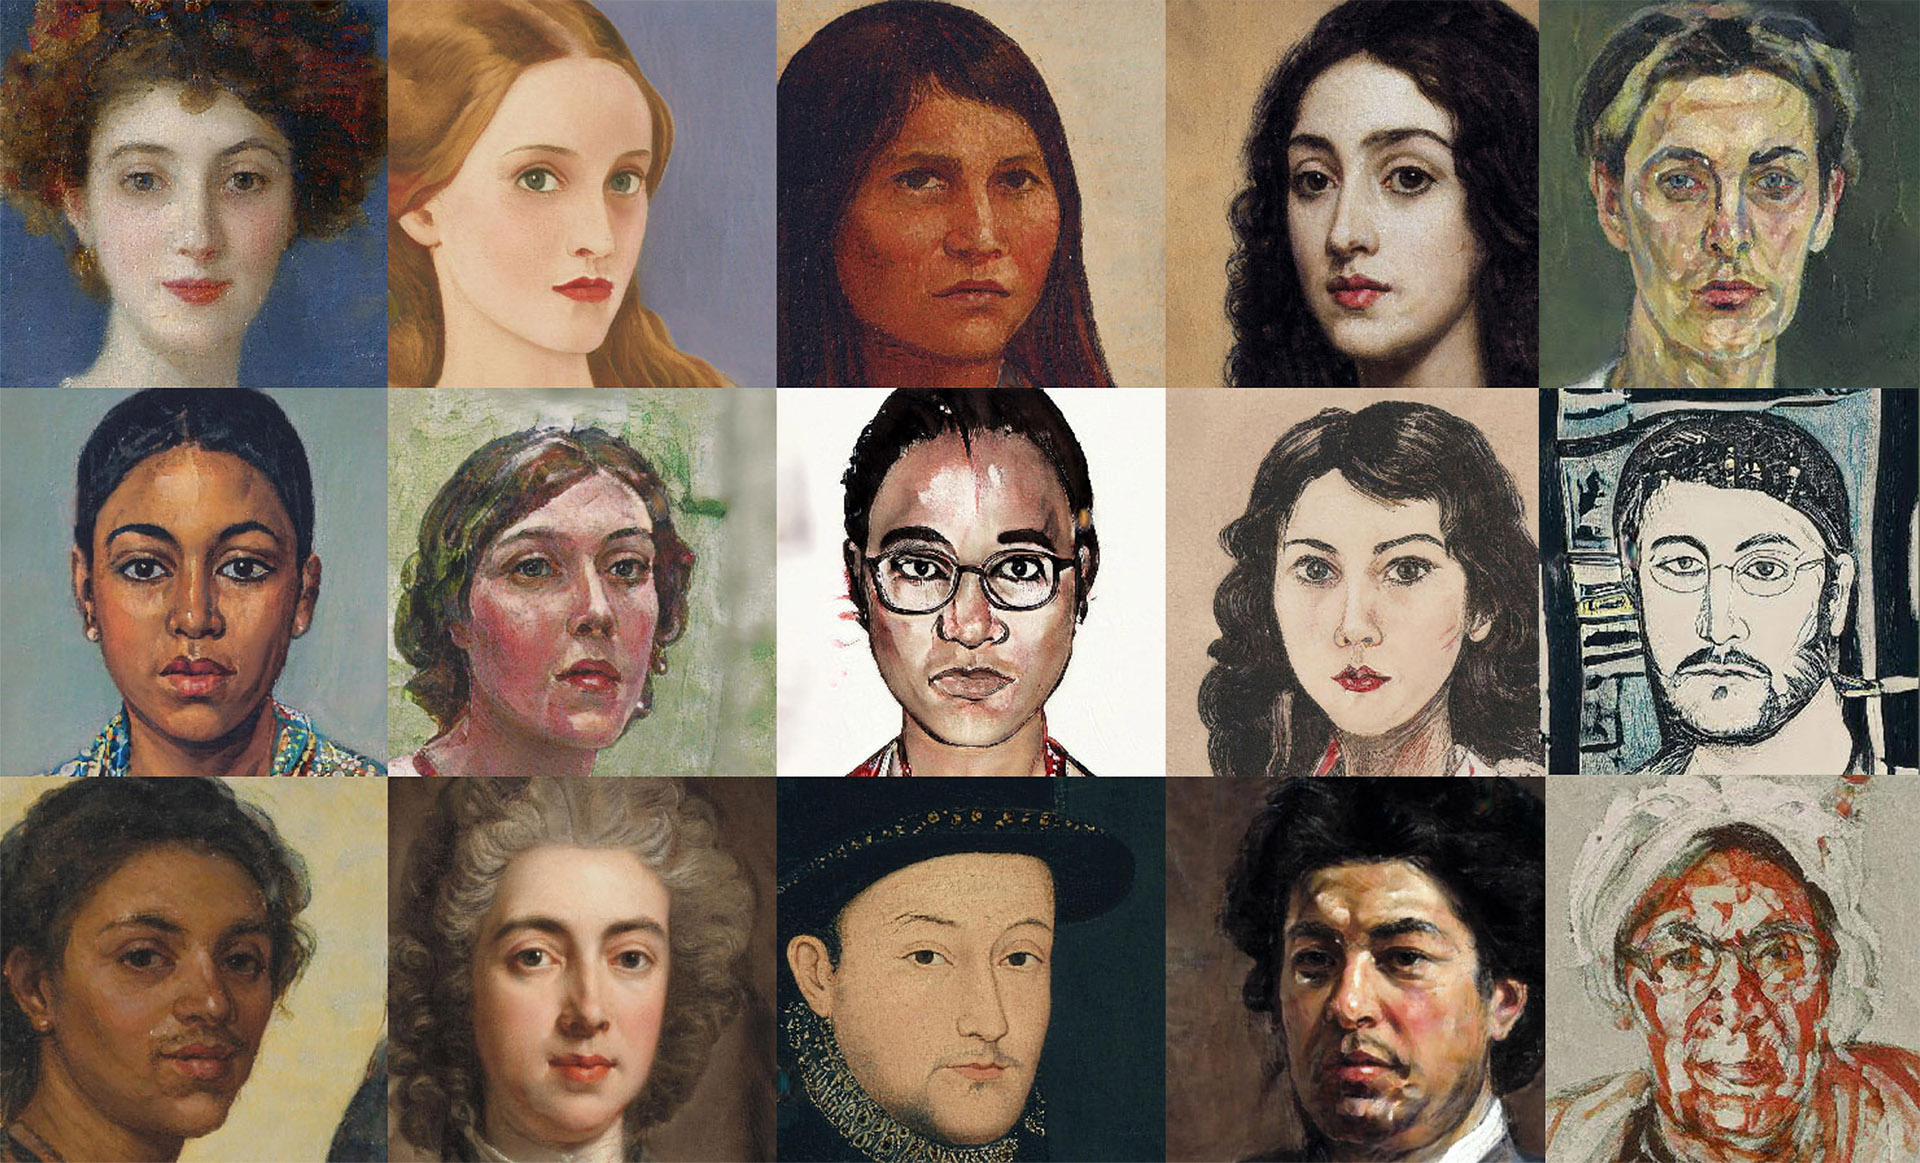 This AI makes you look like a masterpiece — while teaching you about its own bias